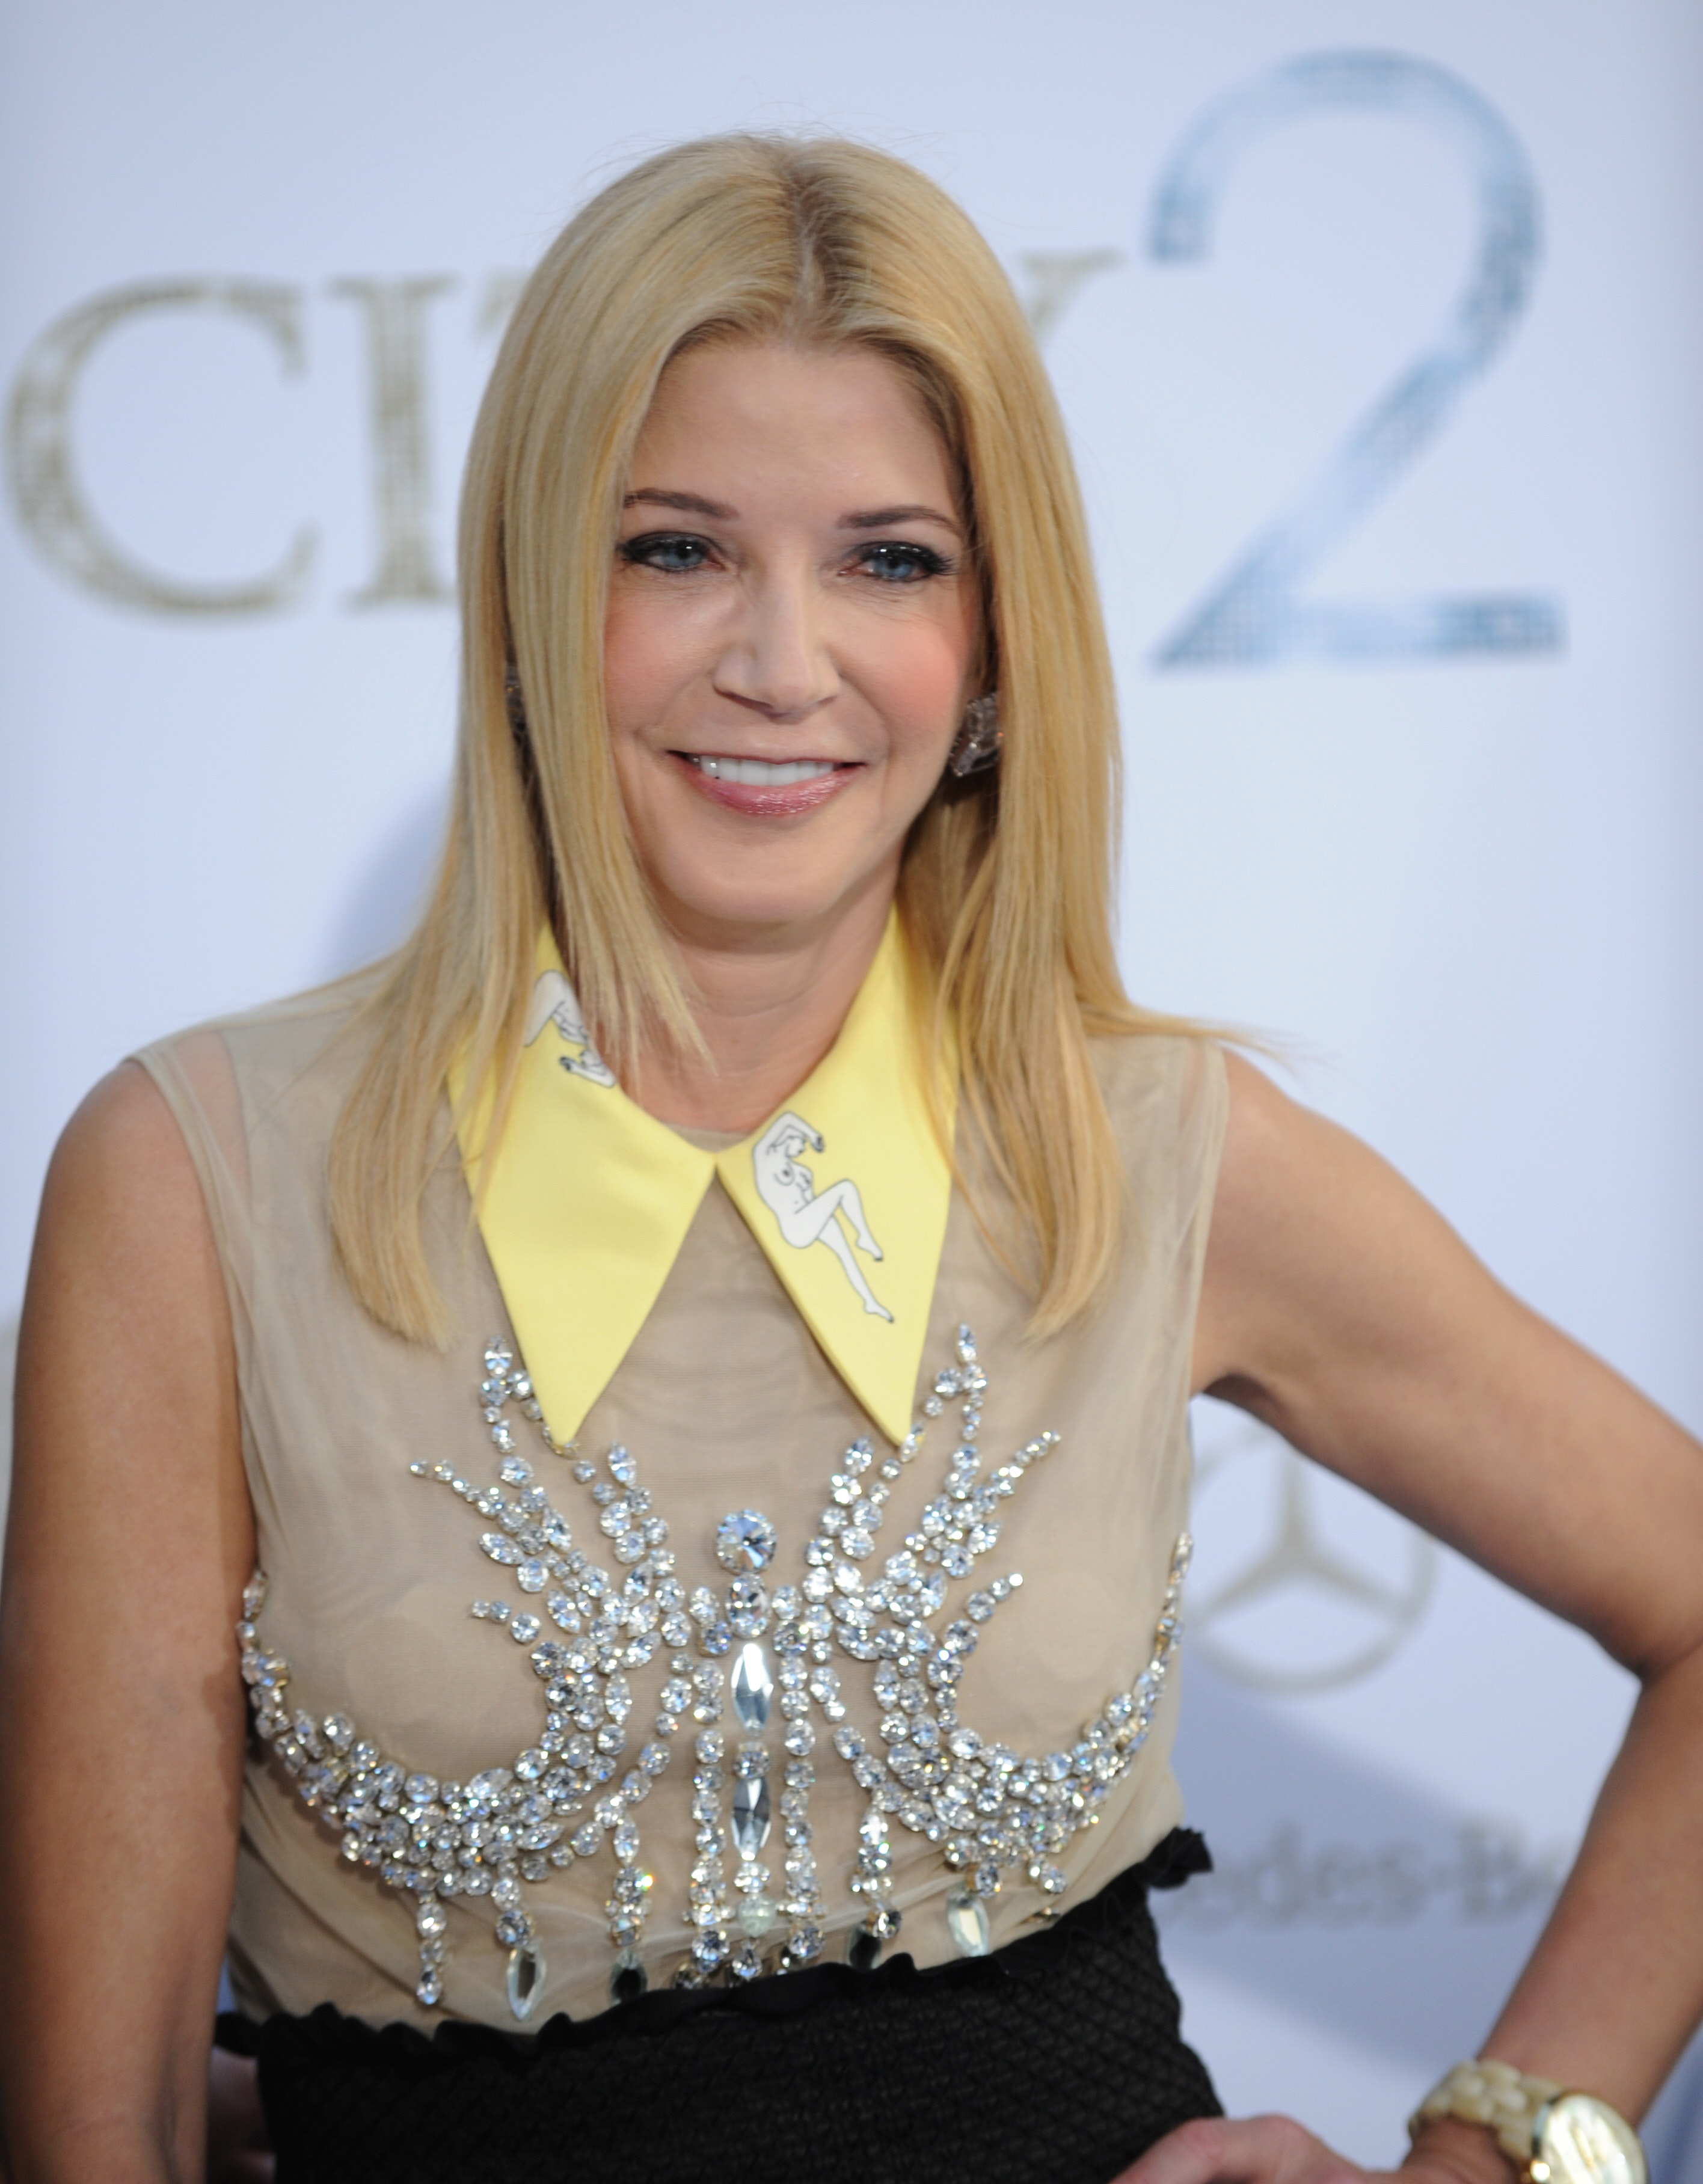 Candace Bushnell Candace Bushnell Elin Hilderbrand And More Give You 9 Huge